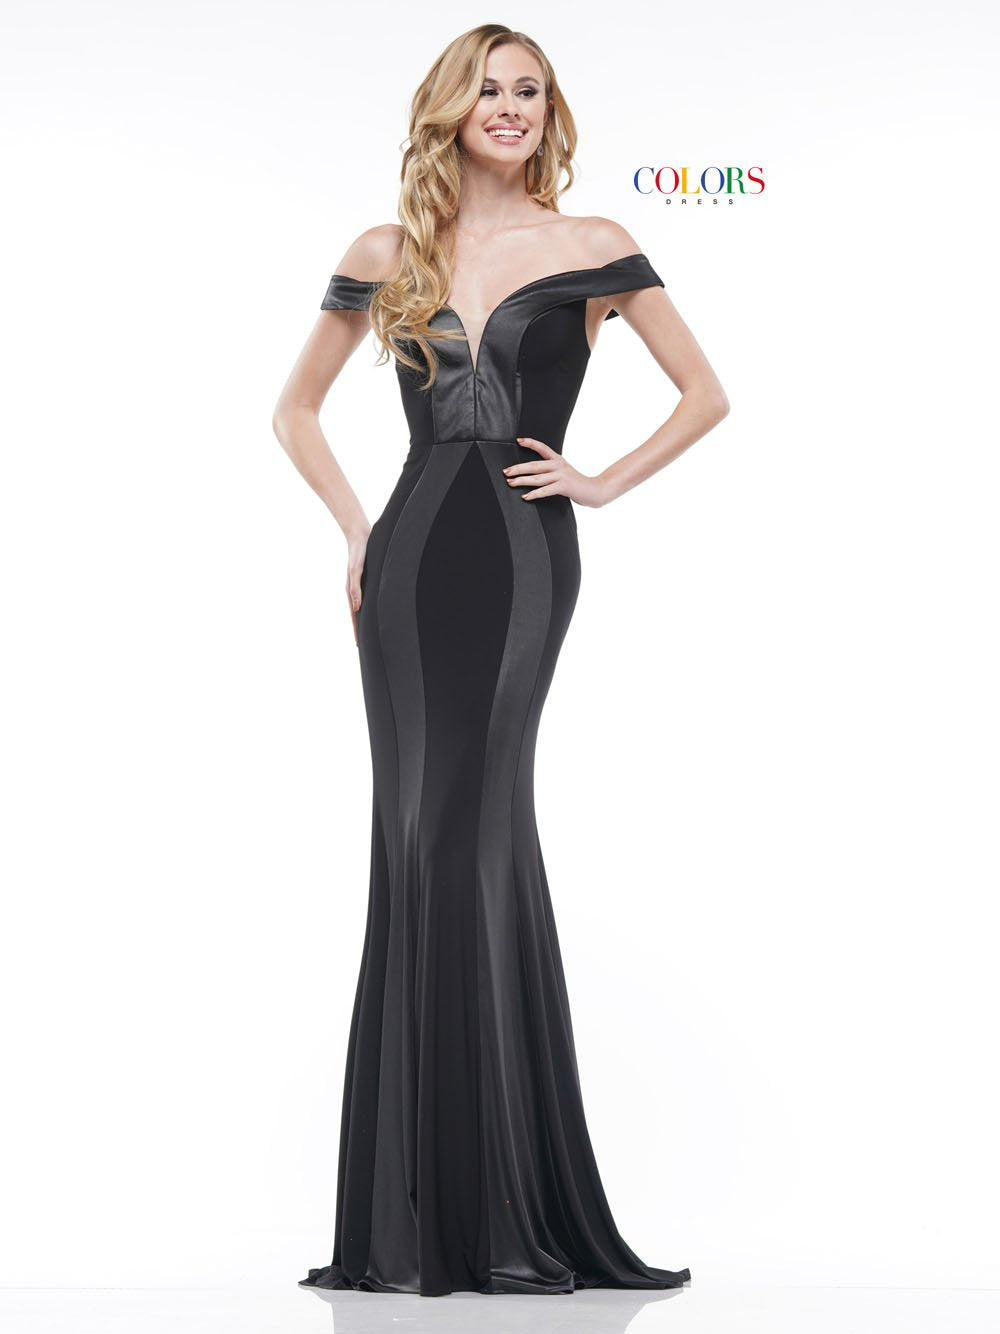 Colors Dress 2185 prom dress images.  Colors 2185 dresses are available in these colors: Black, Navy, Red.